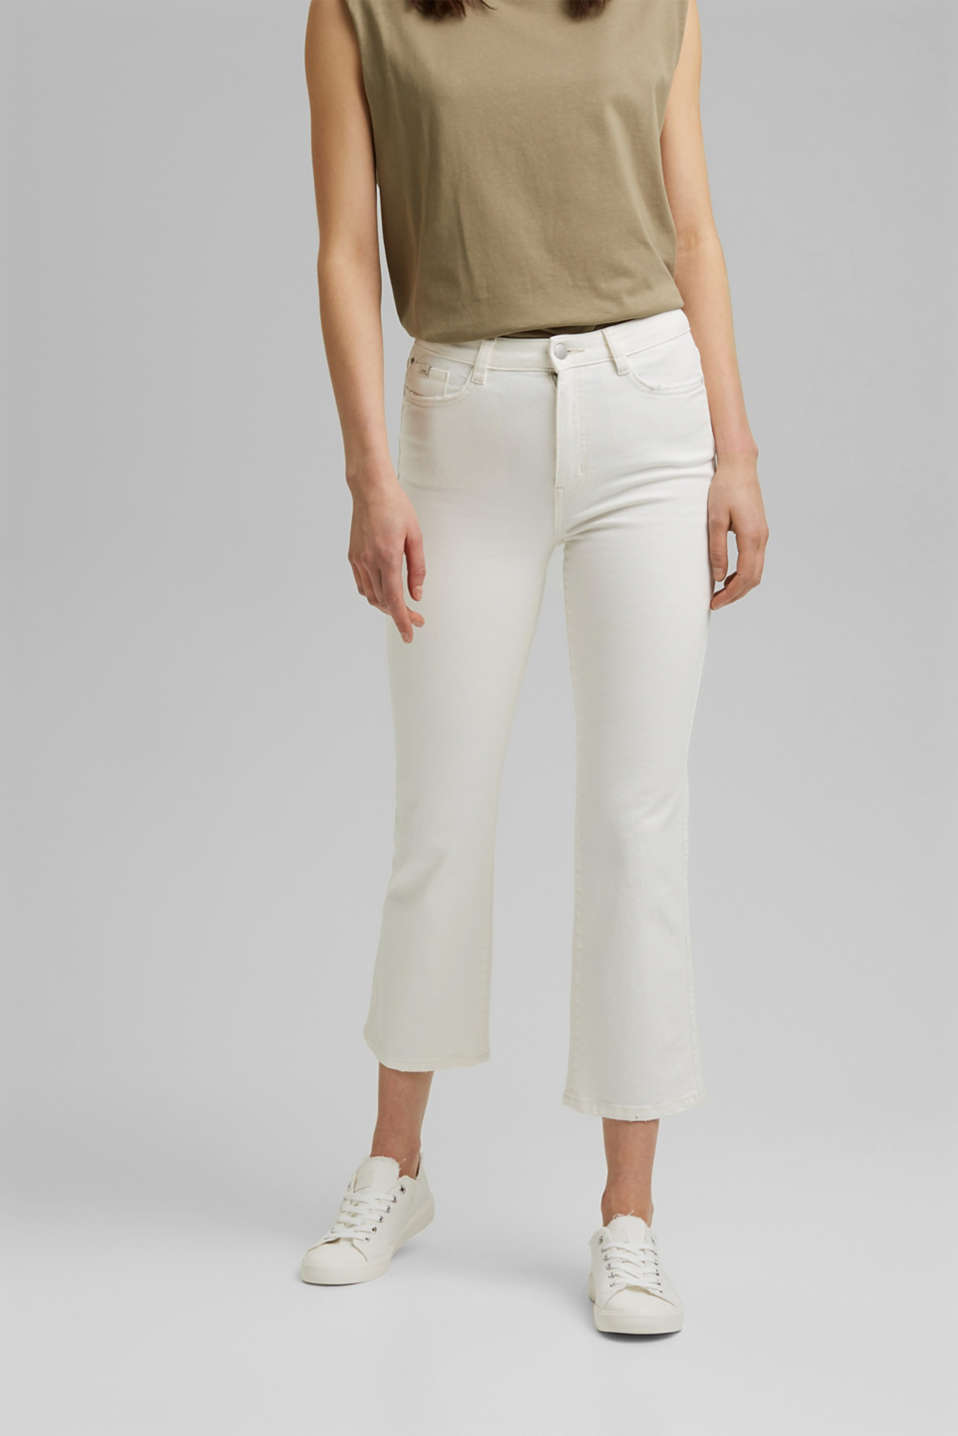 edc - Stretch trousers with a flared leg